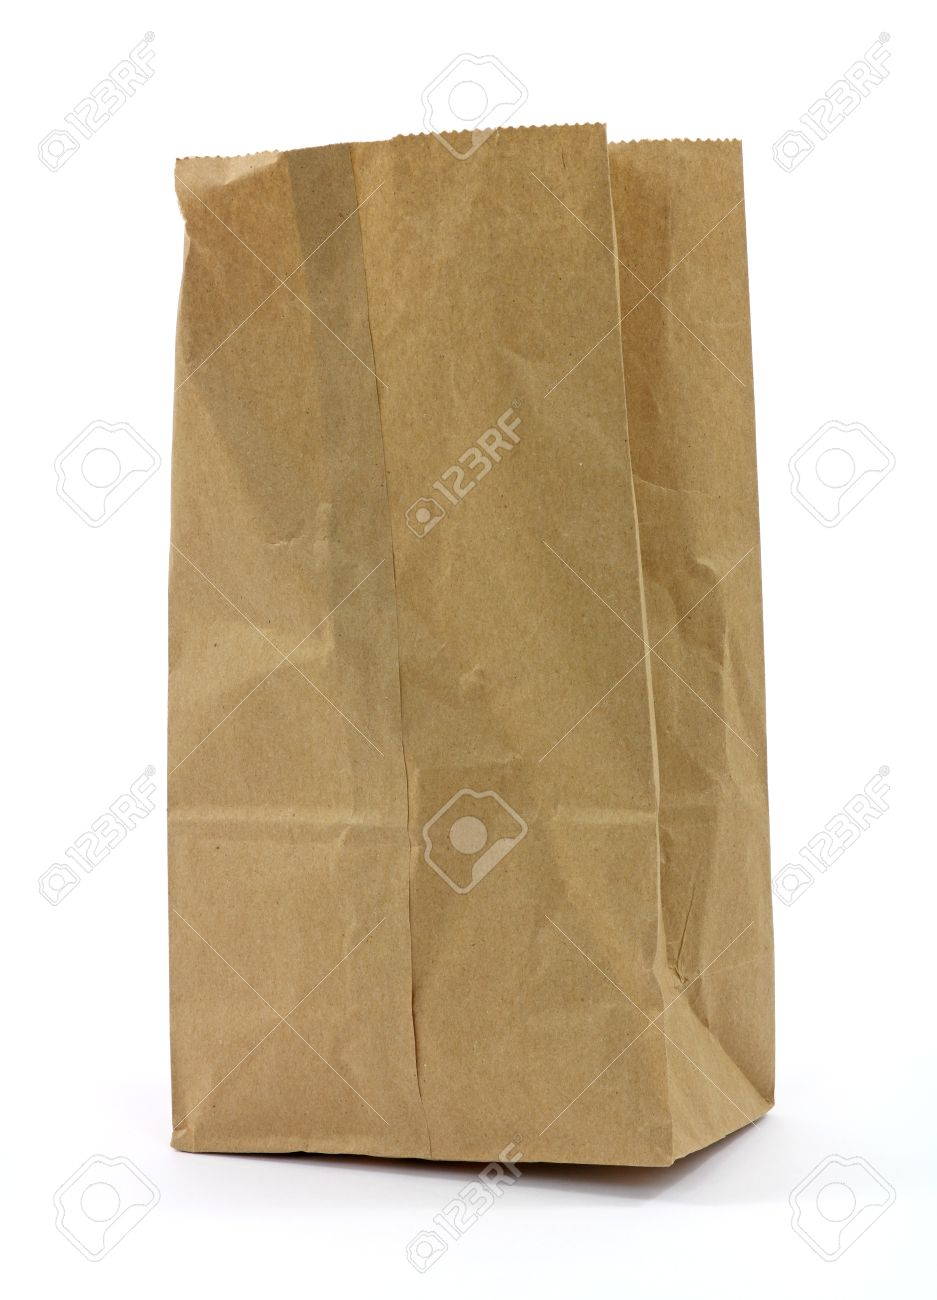 A Used Brown Paper Bag On White Background Stock Photo